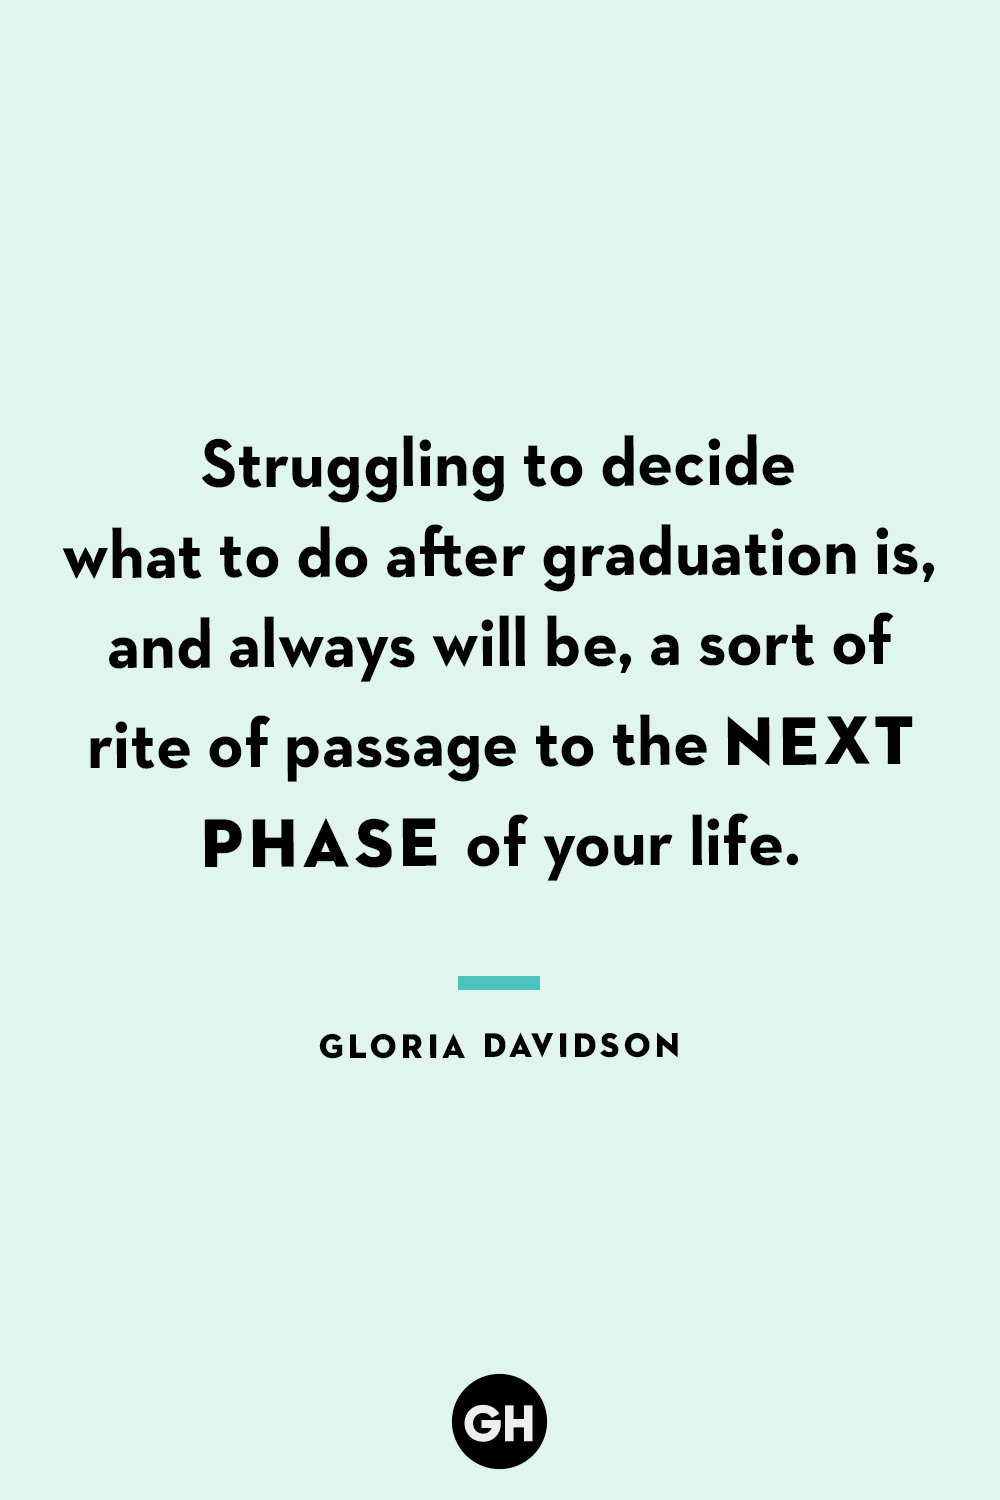 35 Best Funny Graduation Quotes - Hilarious Quotes About ...